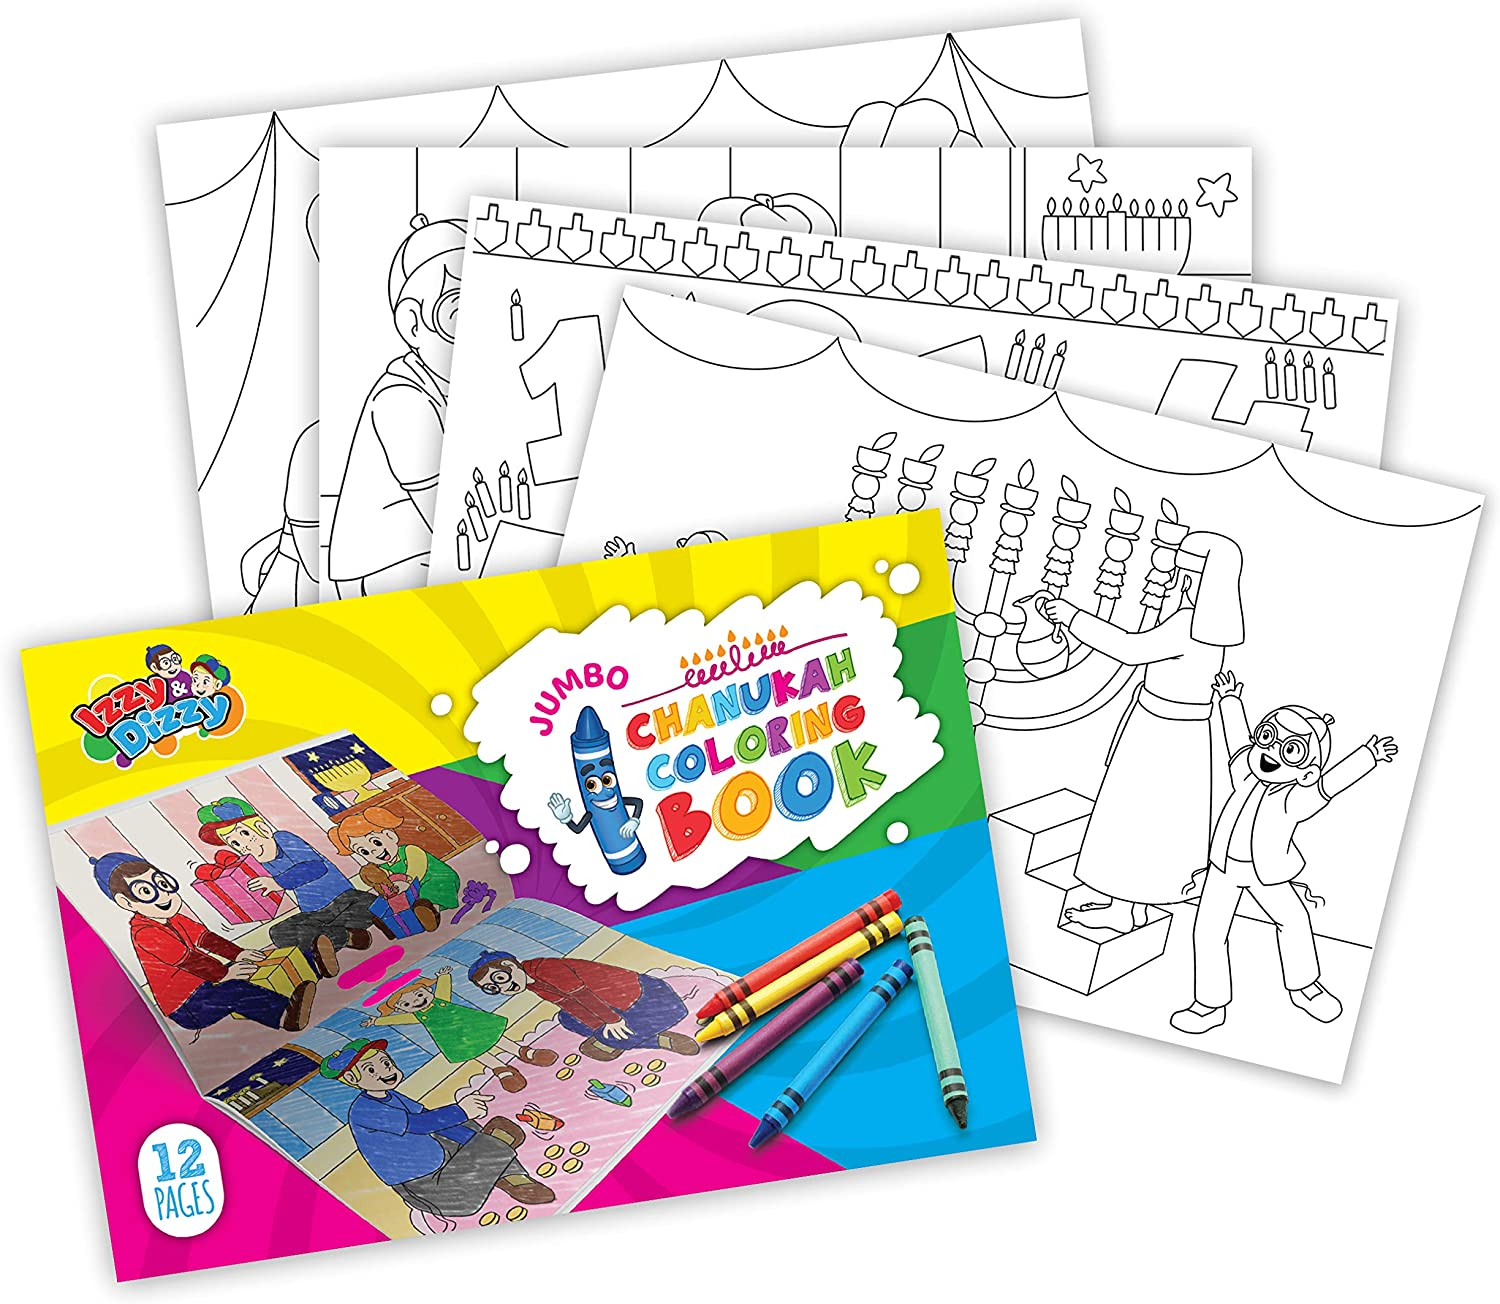 Izzy 'n' Dizzy Jumbo Hanukkah Coloring a for Max 49% OFF Book - Great Max 70% OFF Partys